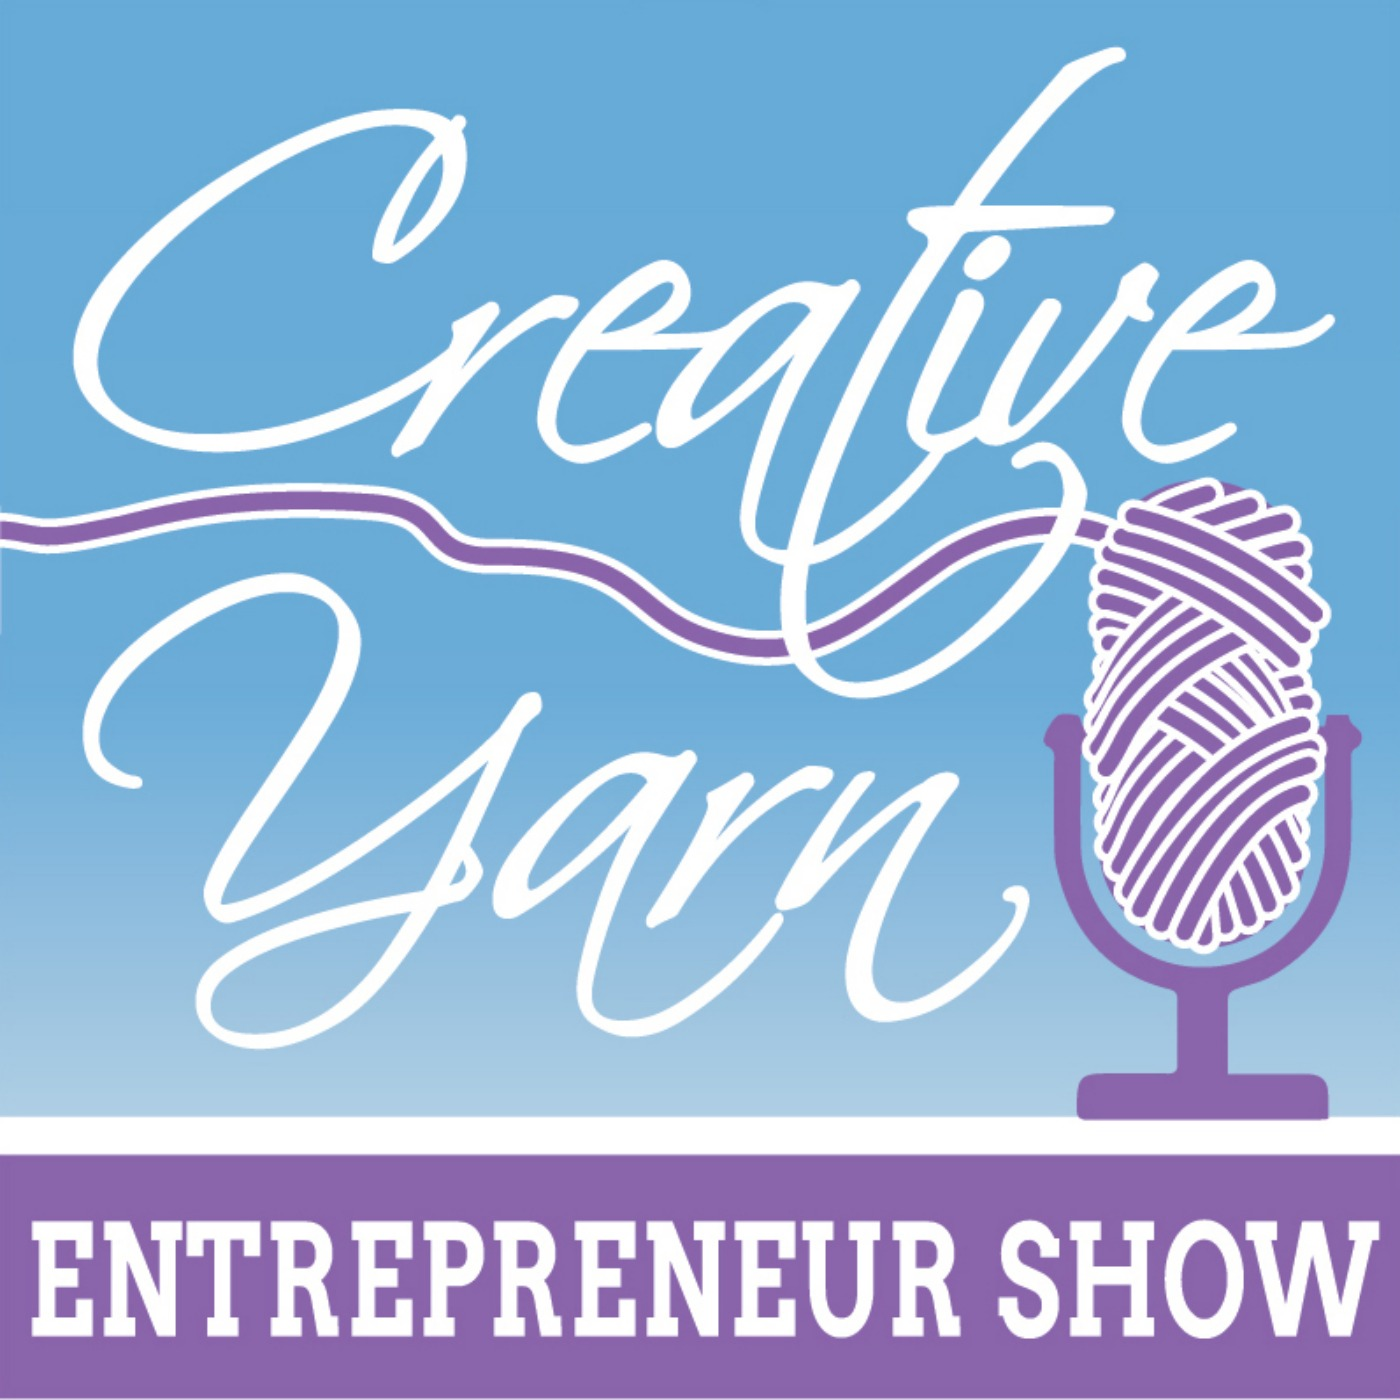 Episode 29: Selling on Etsy, Passive Income, and Using Trending Keywords with Alexandra Tavel from Two of Wands - The Creative Yarn Entrepreneur Show